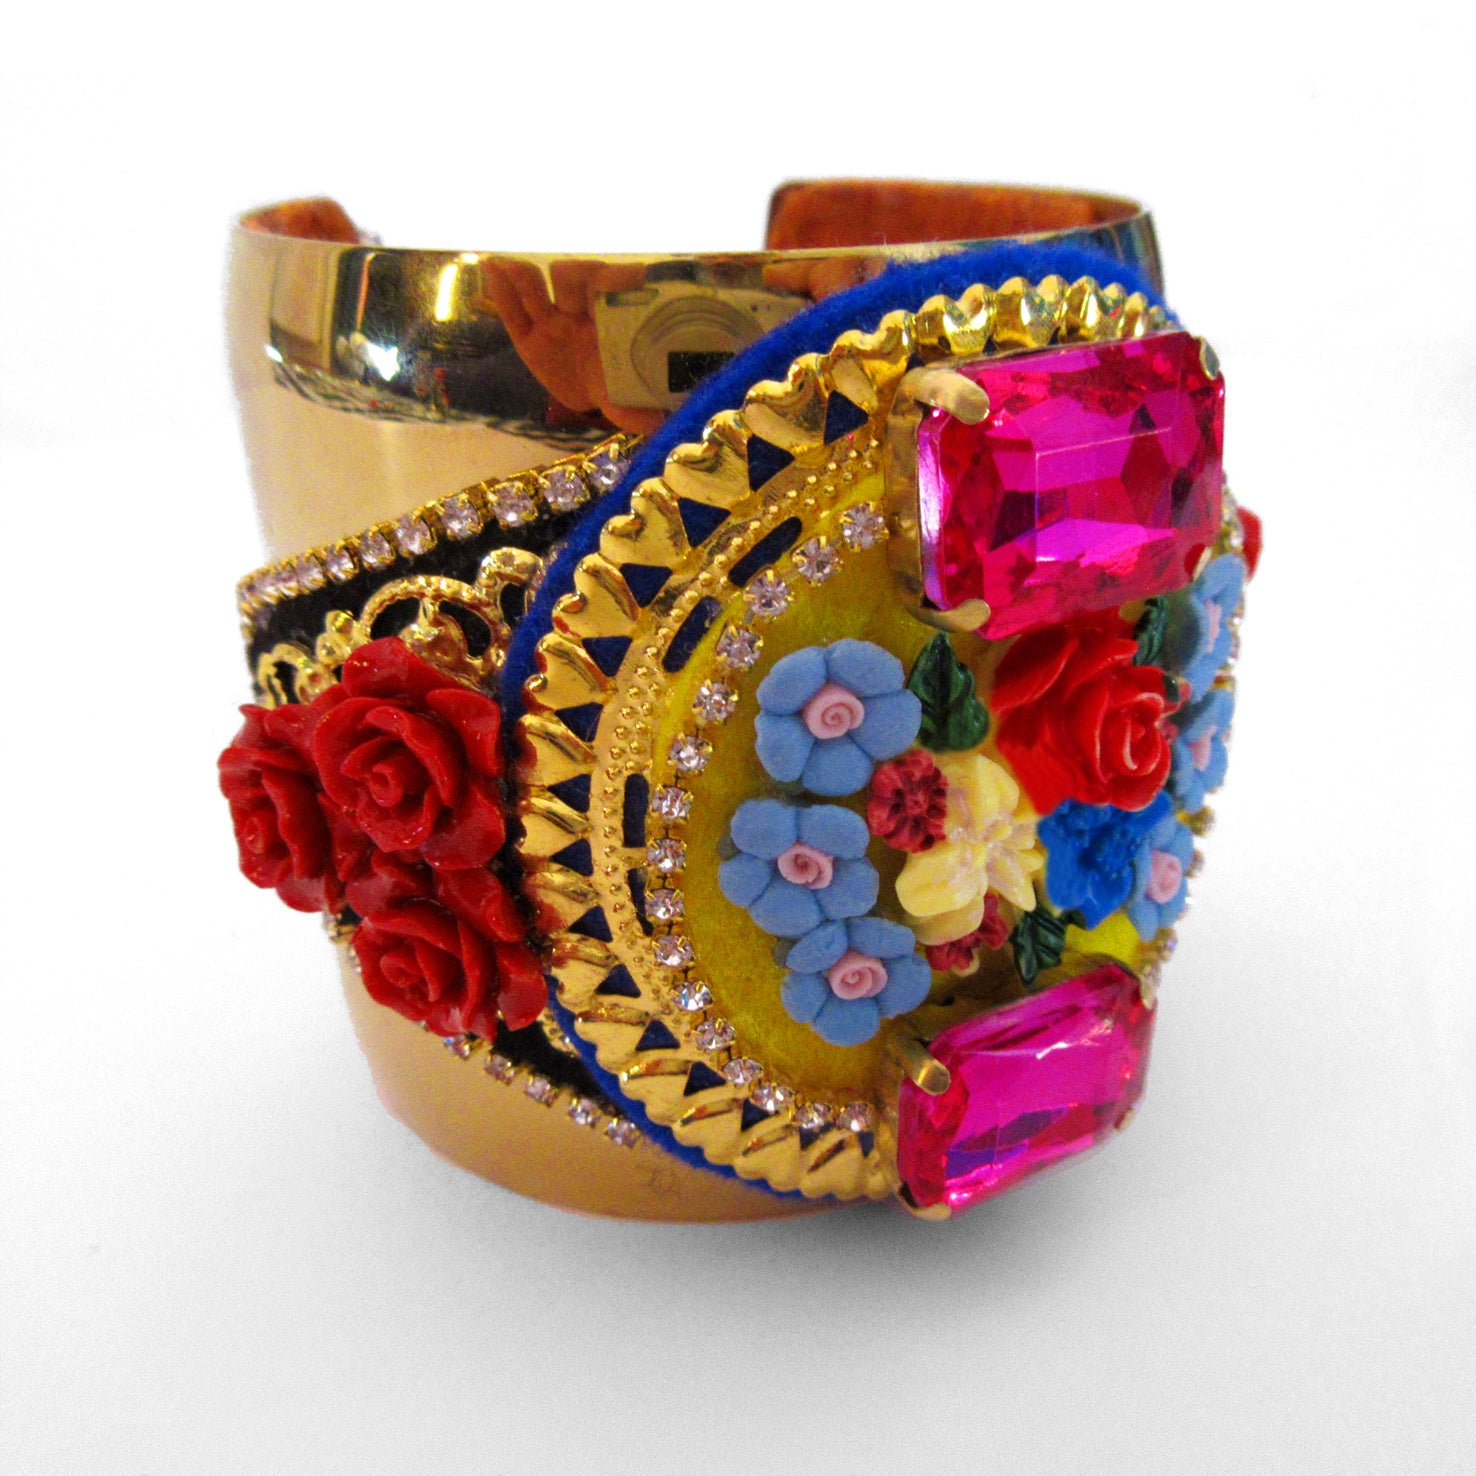 Mouchkine Jewelry made in france couture floral bangle Bracelet